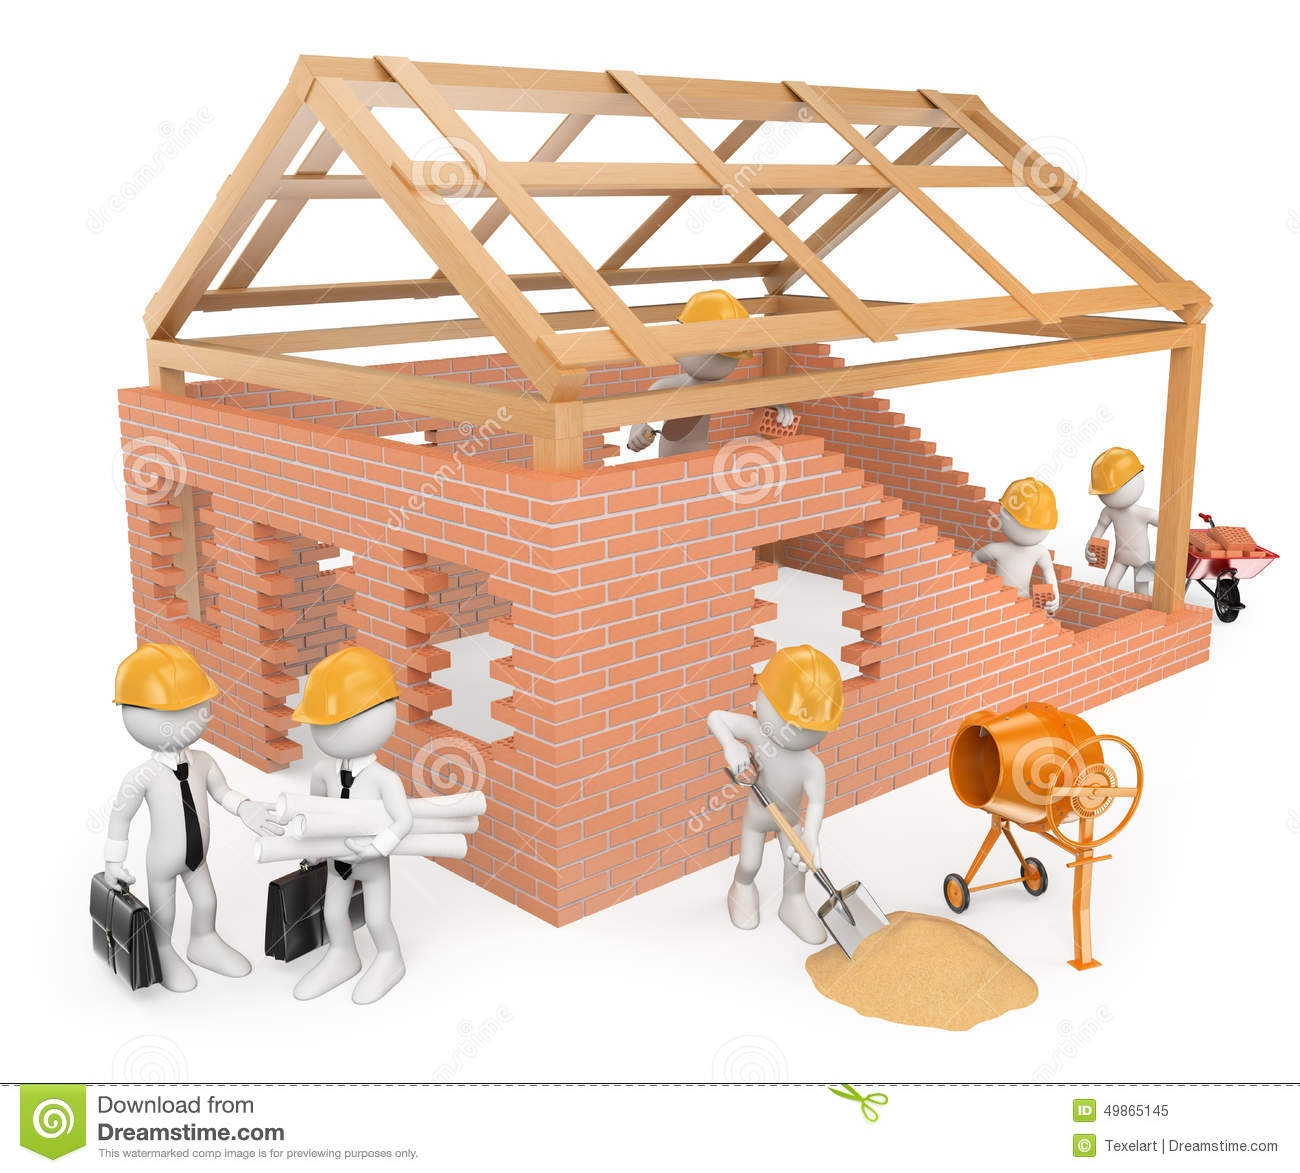 Clipart of teens building a house clipground for Build a home online free